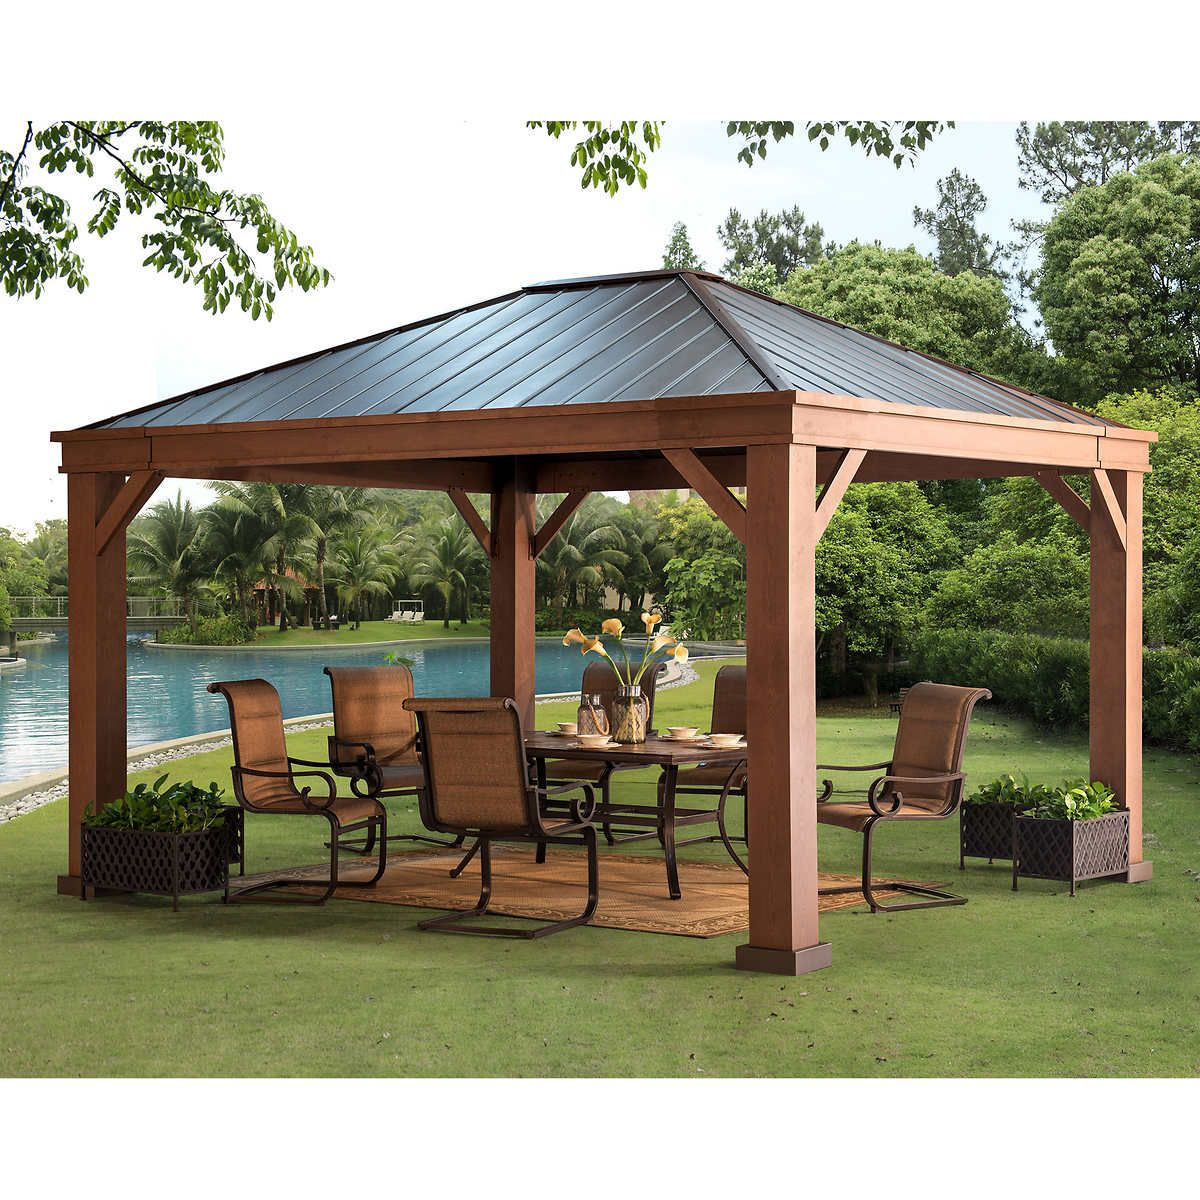 Pin By Zanetta Brown On Patio Outdoor Pergola Backyard Pavilion Backyard Gazebo